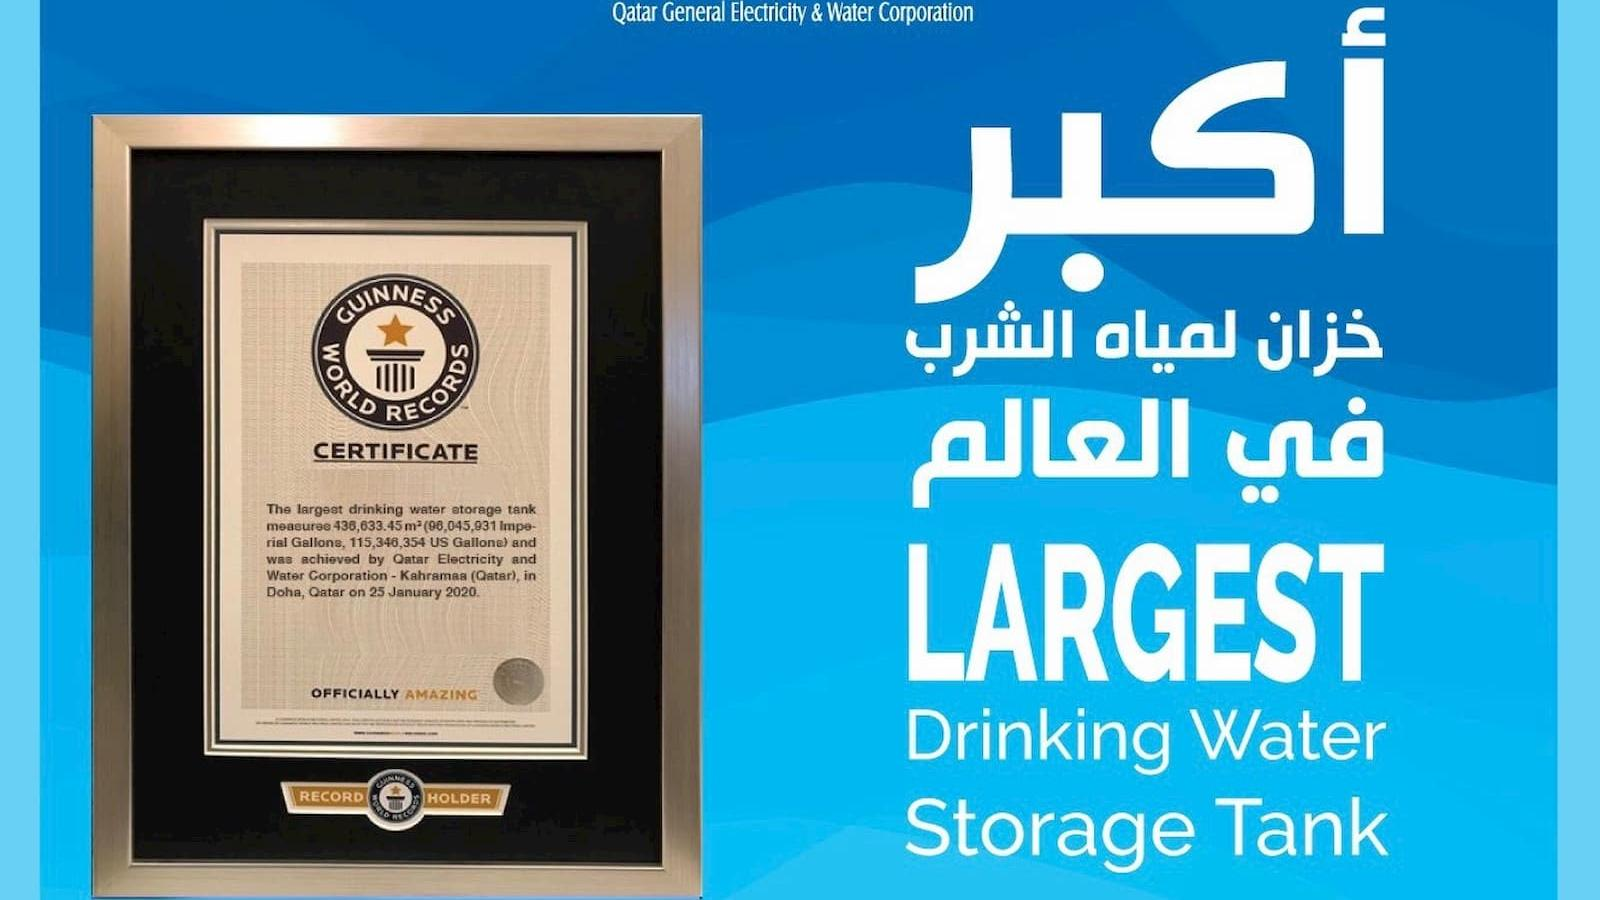 Kahramaa enters Guinness World Records for largest drinking water storage tank